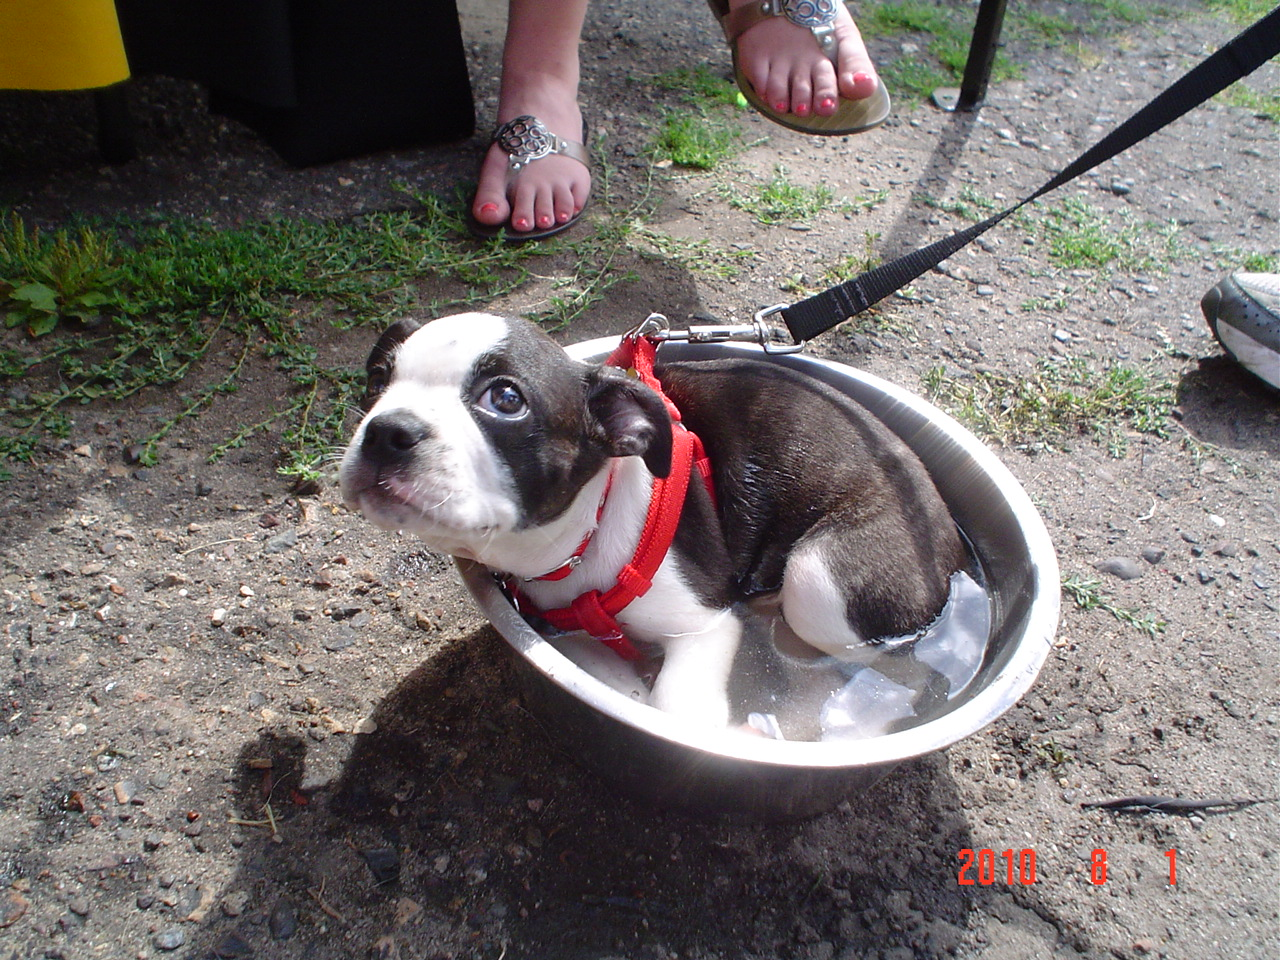 Boston Terrier in a water bowl